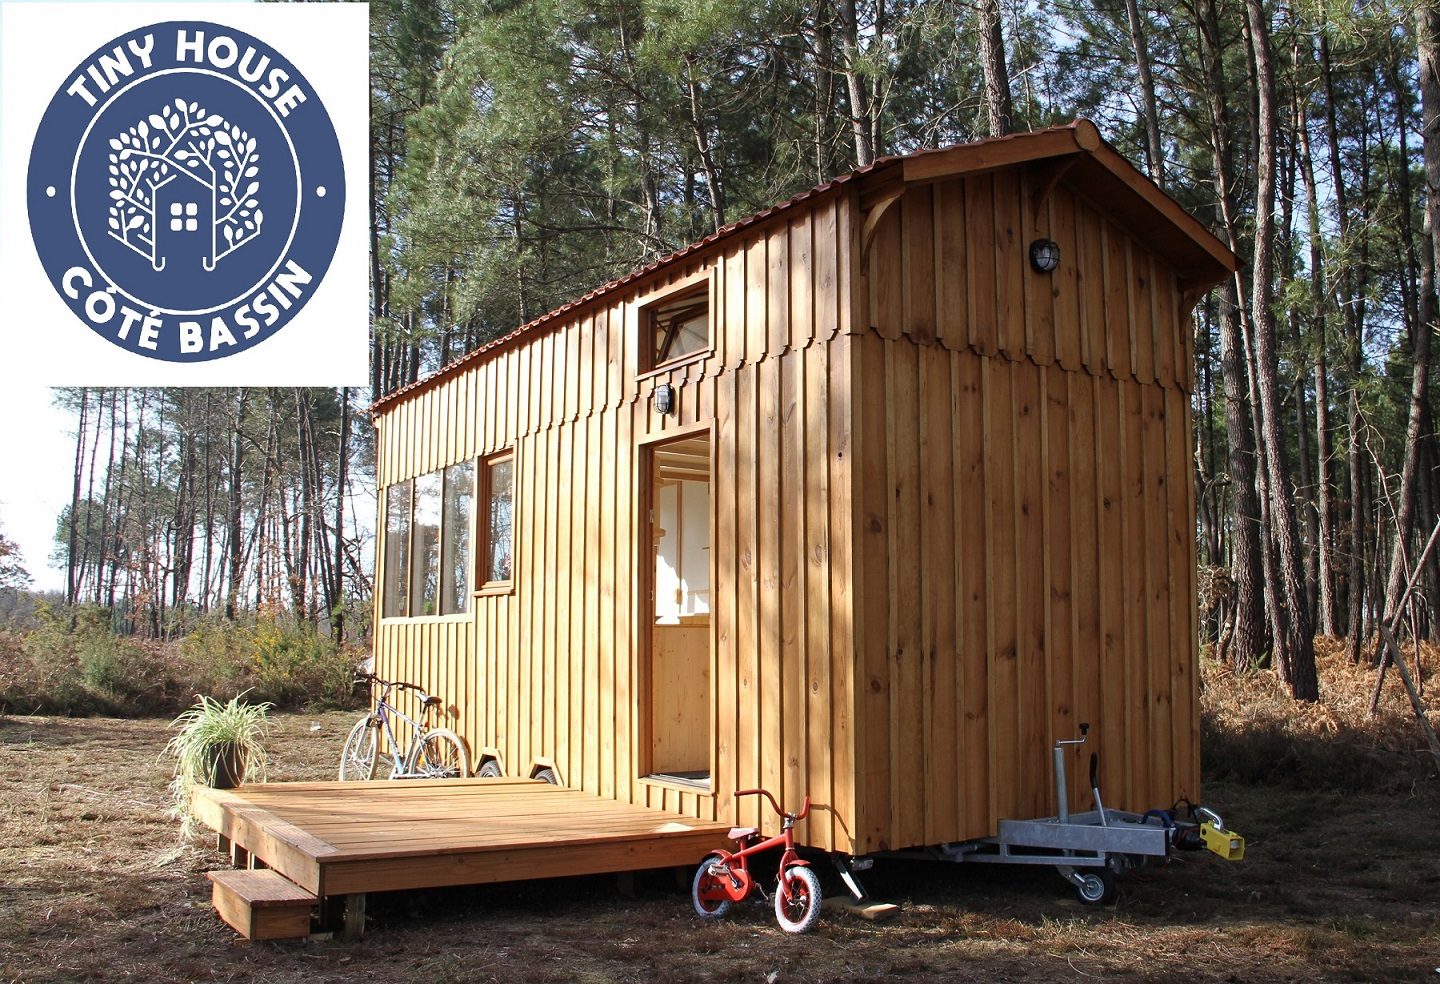 Achat Remorque Tiny House tiny house cote bassin - annonces tiny house france